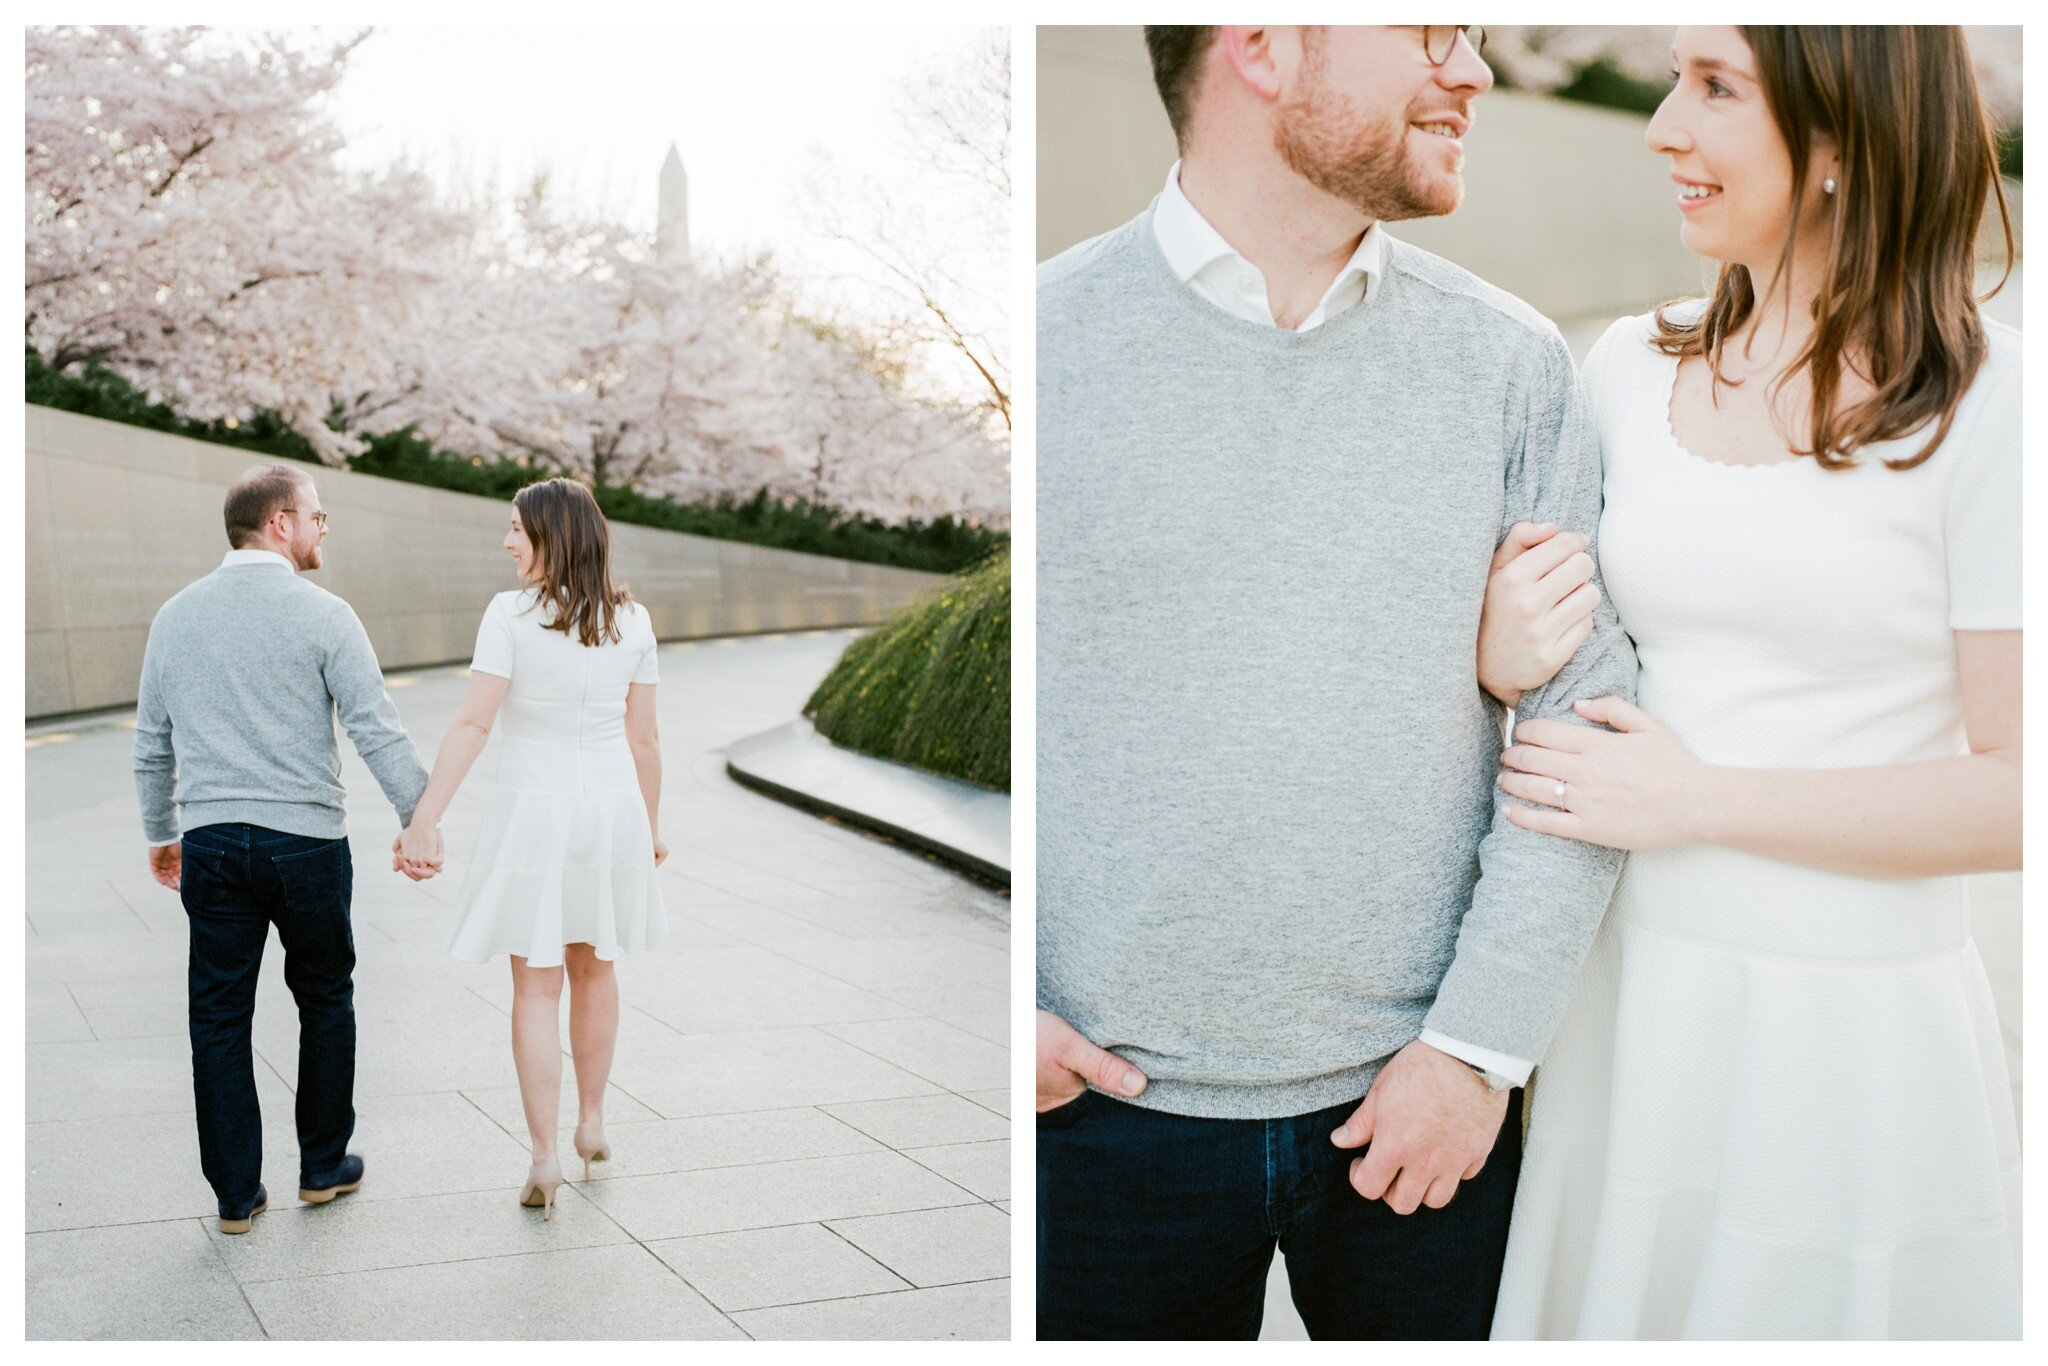 Spring Cherry Blossom Engagement Session in Washington DC by fine art wedding photographer Lissa Ryan Photography